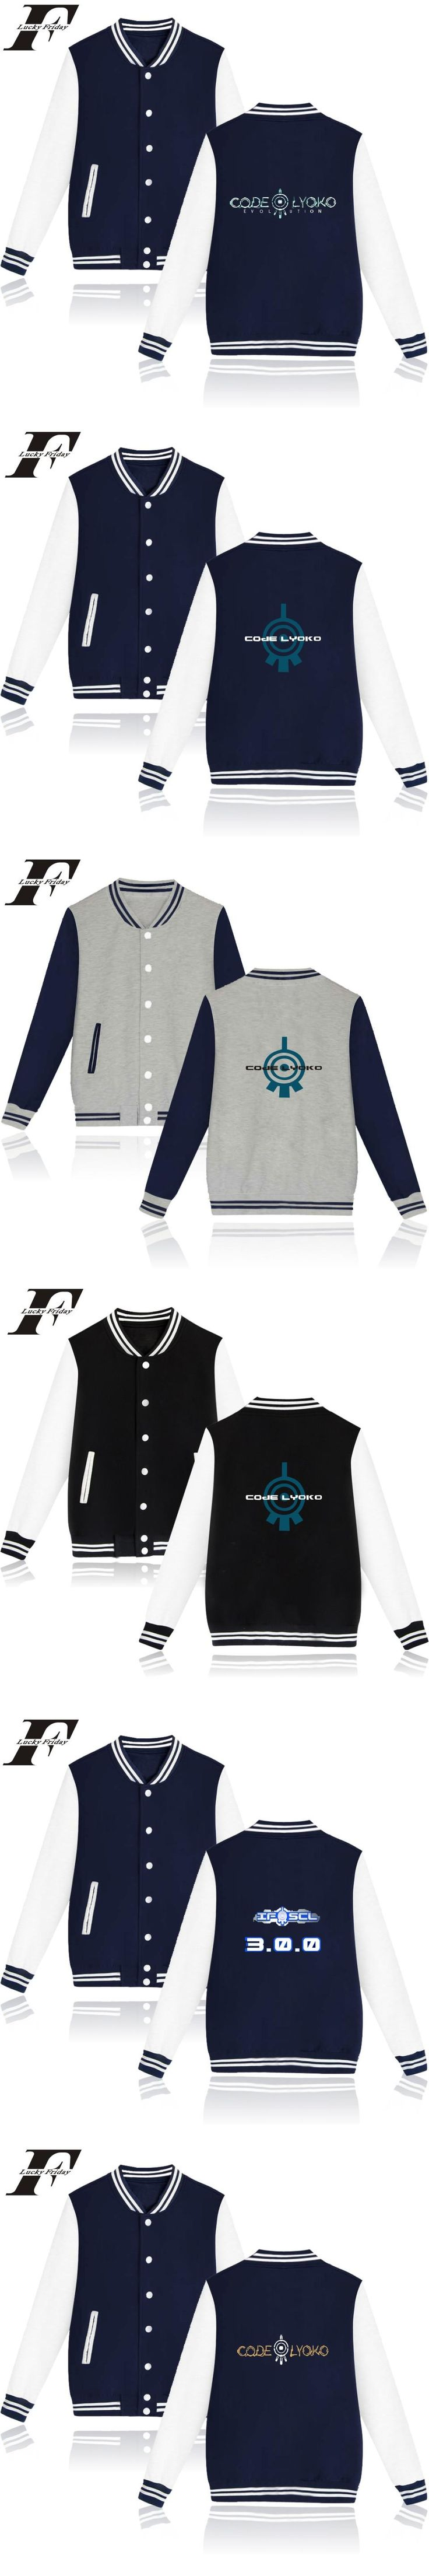 winter jacket men hit hop bomber jacket Code Lyoko Cartoon Baseball jackets men basic fitness jacket with Buttons 4xl roupas